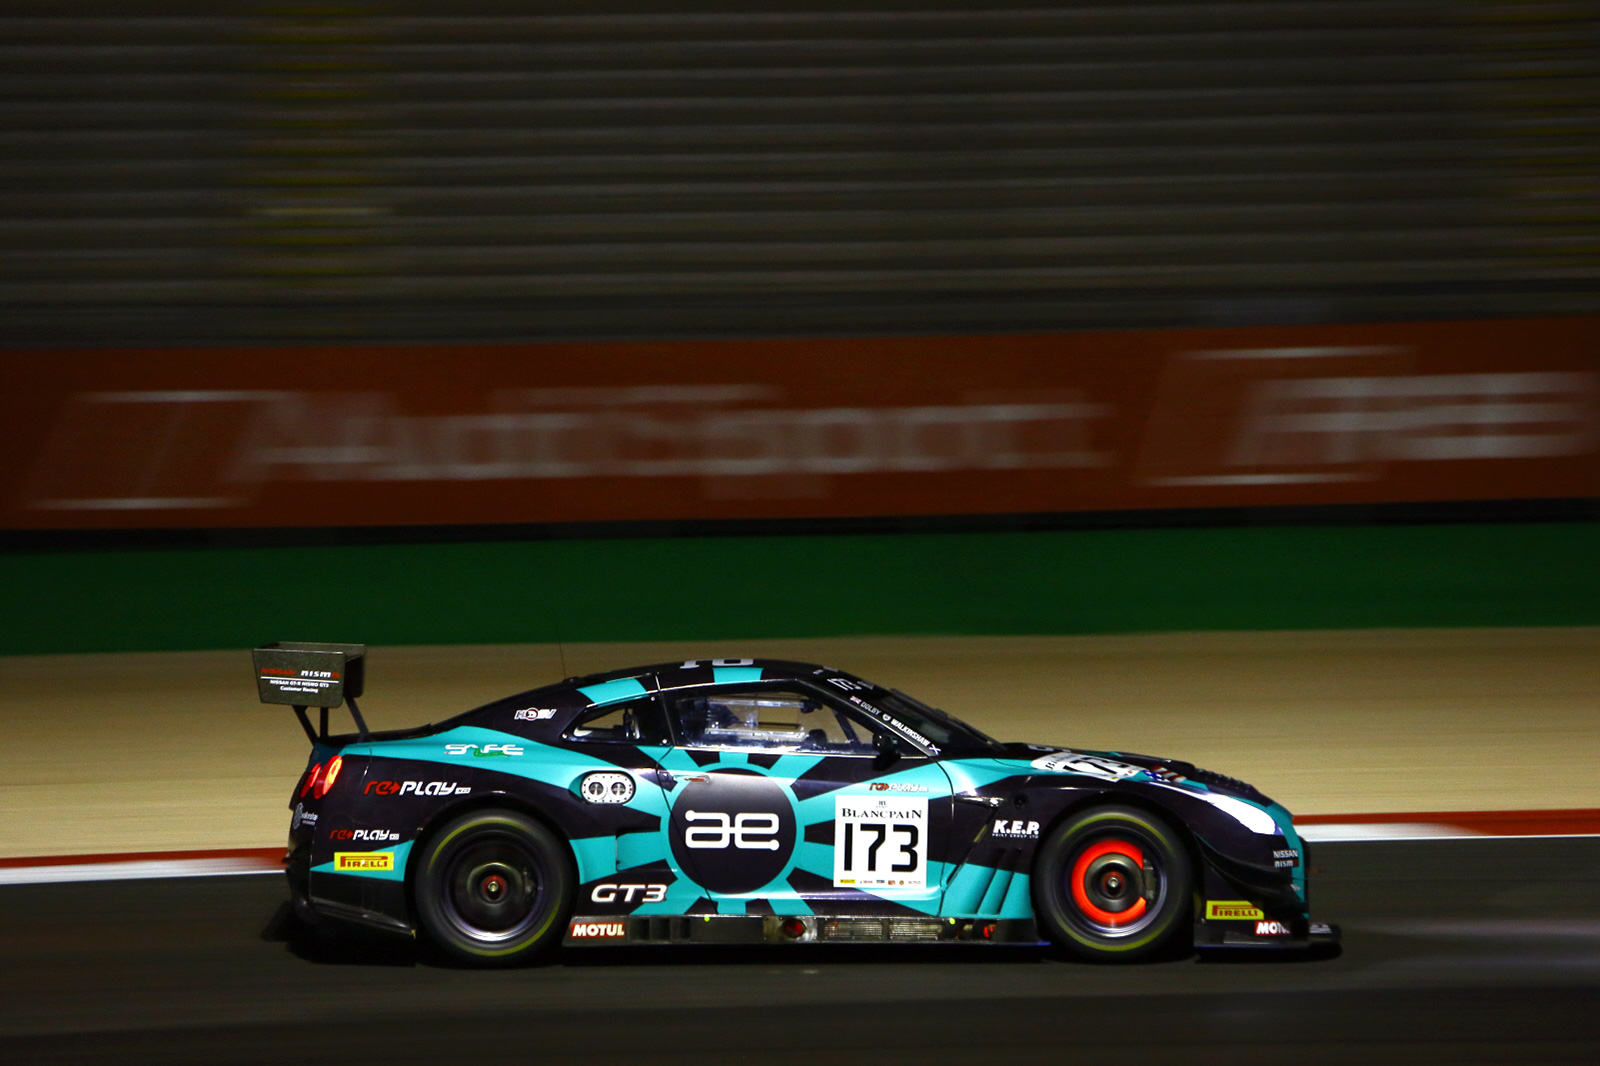 The incredible performance of the No.173 Nissan GT-R NISMO GT3 was clear to see.